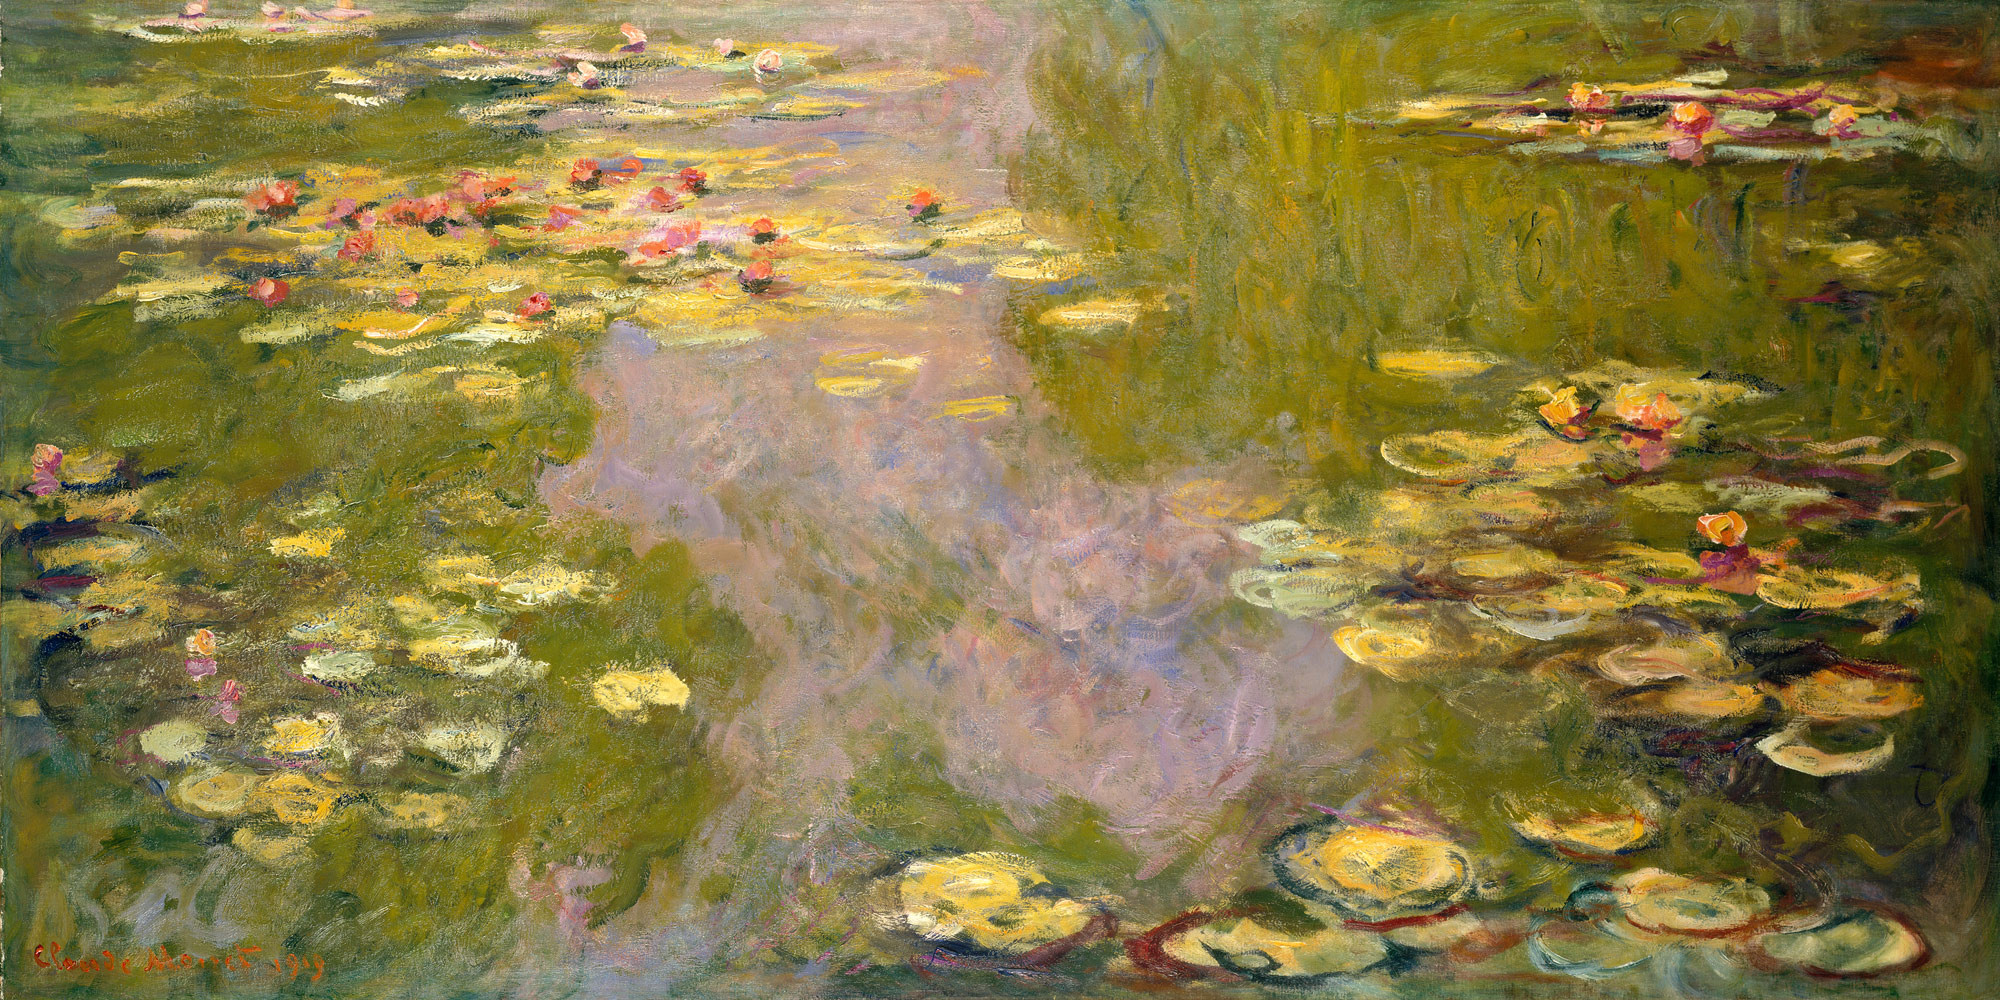 Claude monet essay